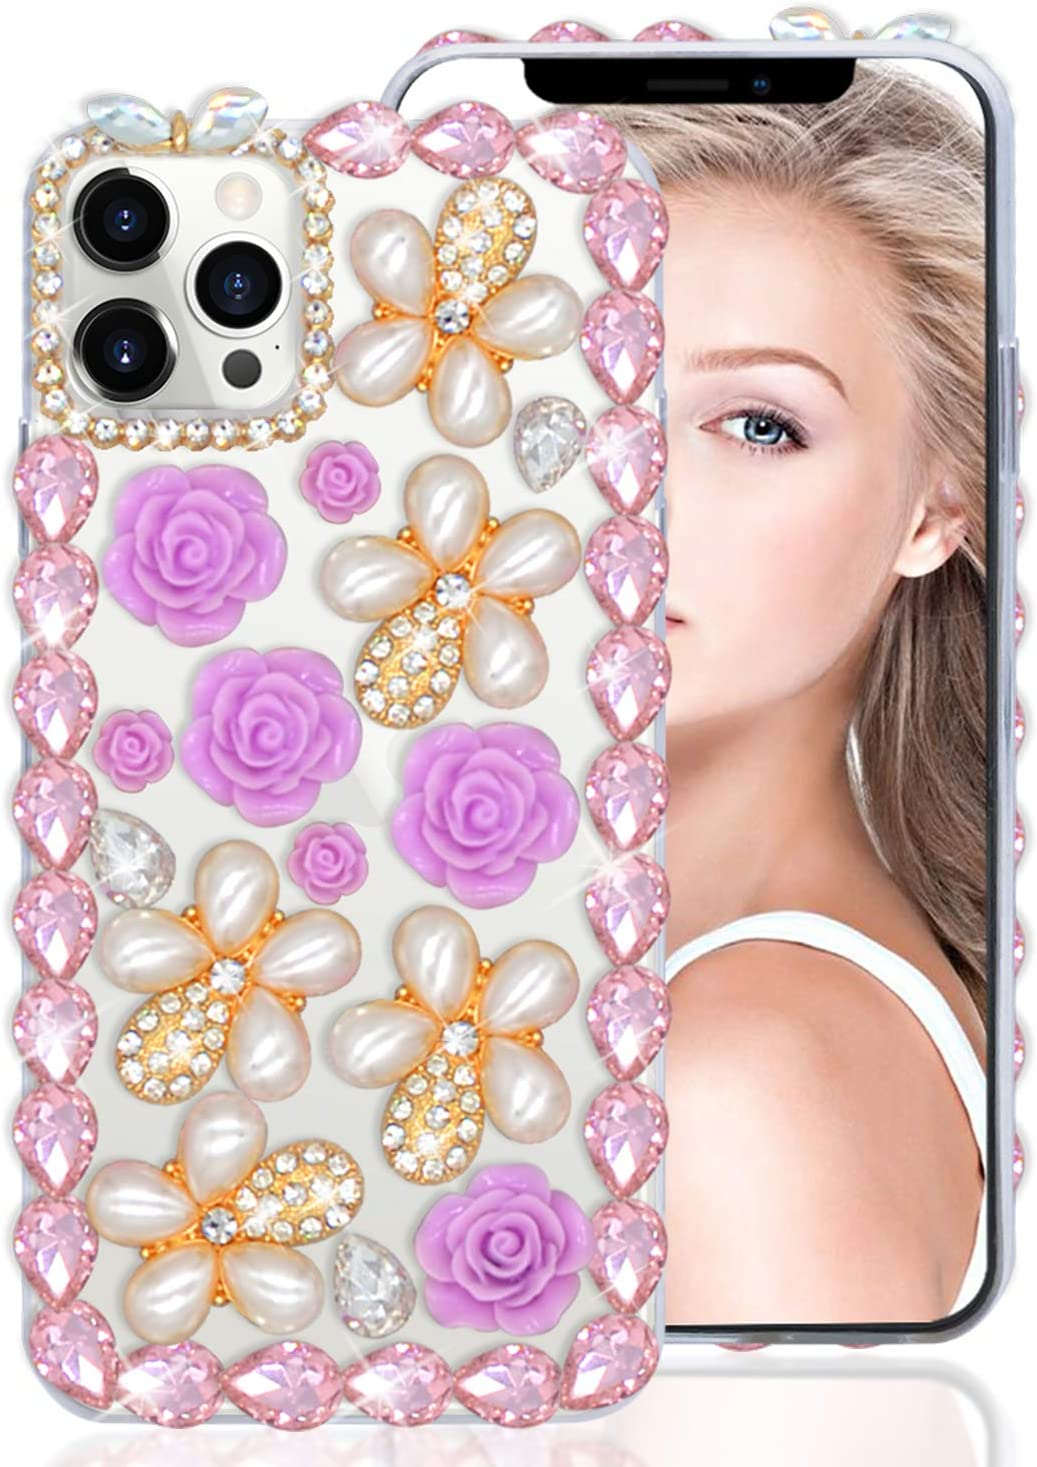 LUVI Compatible with iPhone 12 Pro Max Rhinestone Diamond Case Cute Bling Glitter 3D Flower Pearl Crystal Sparkle for Girls Women Protective Cover Shiny Clear Transparent Luxury Fashion Case 6.7 inch